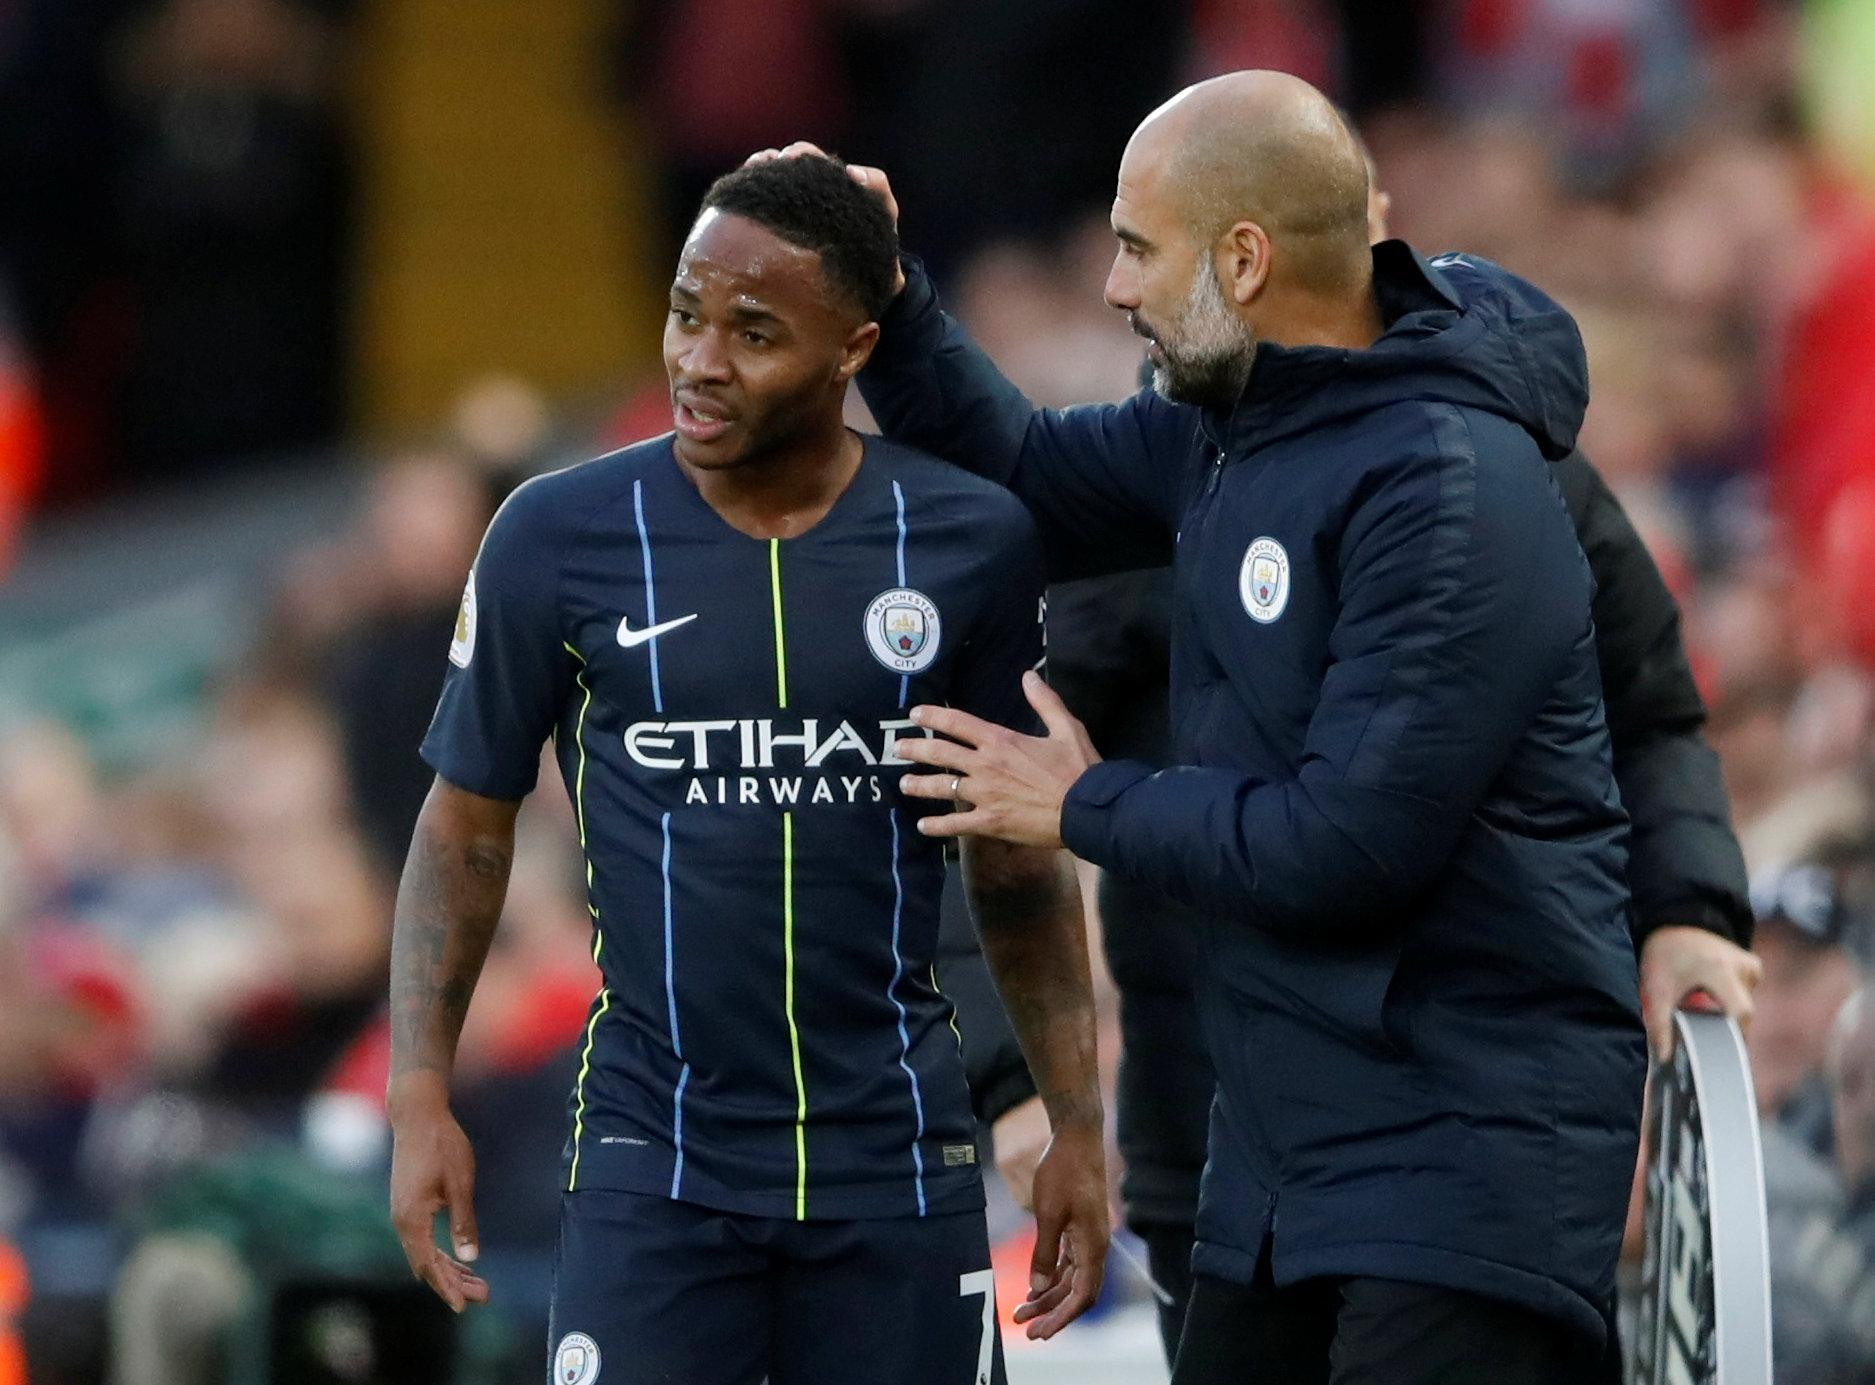 Raheem Sterling only has 18 months left on his current Man City contract